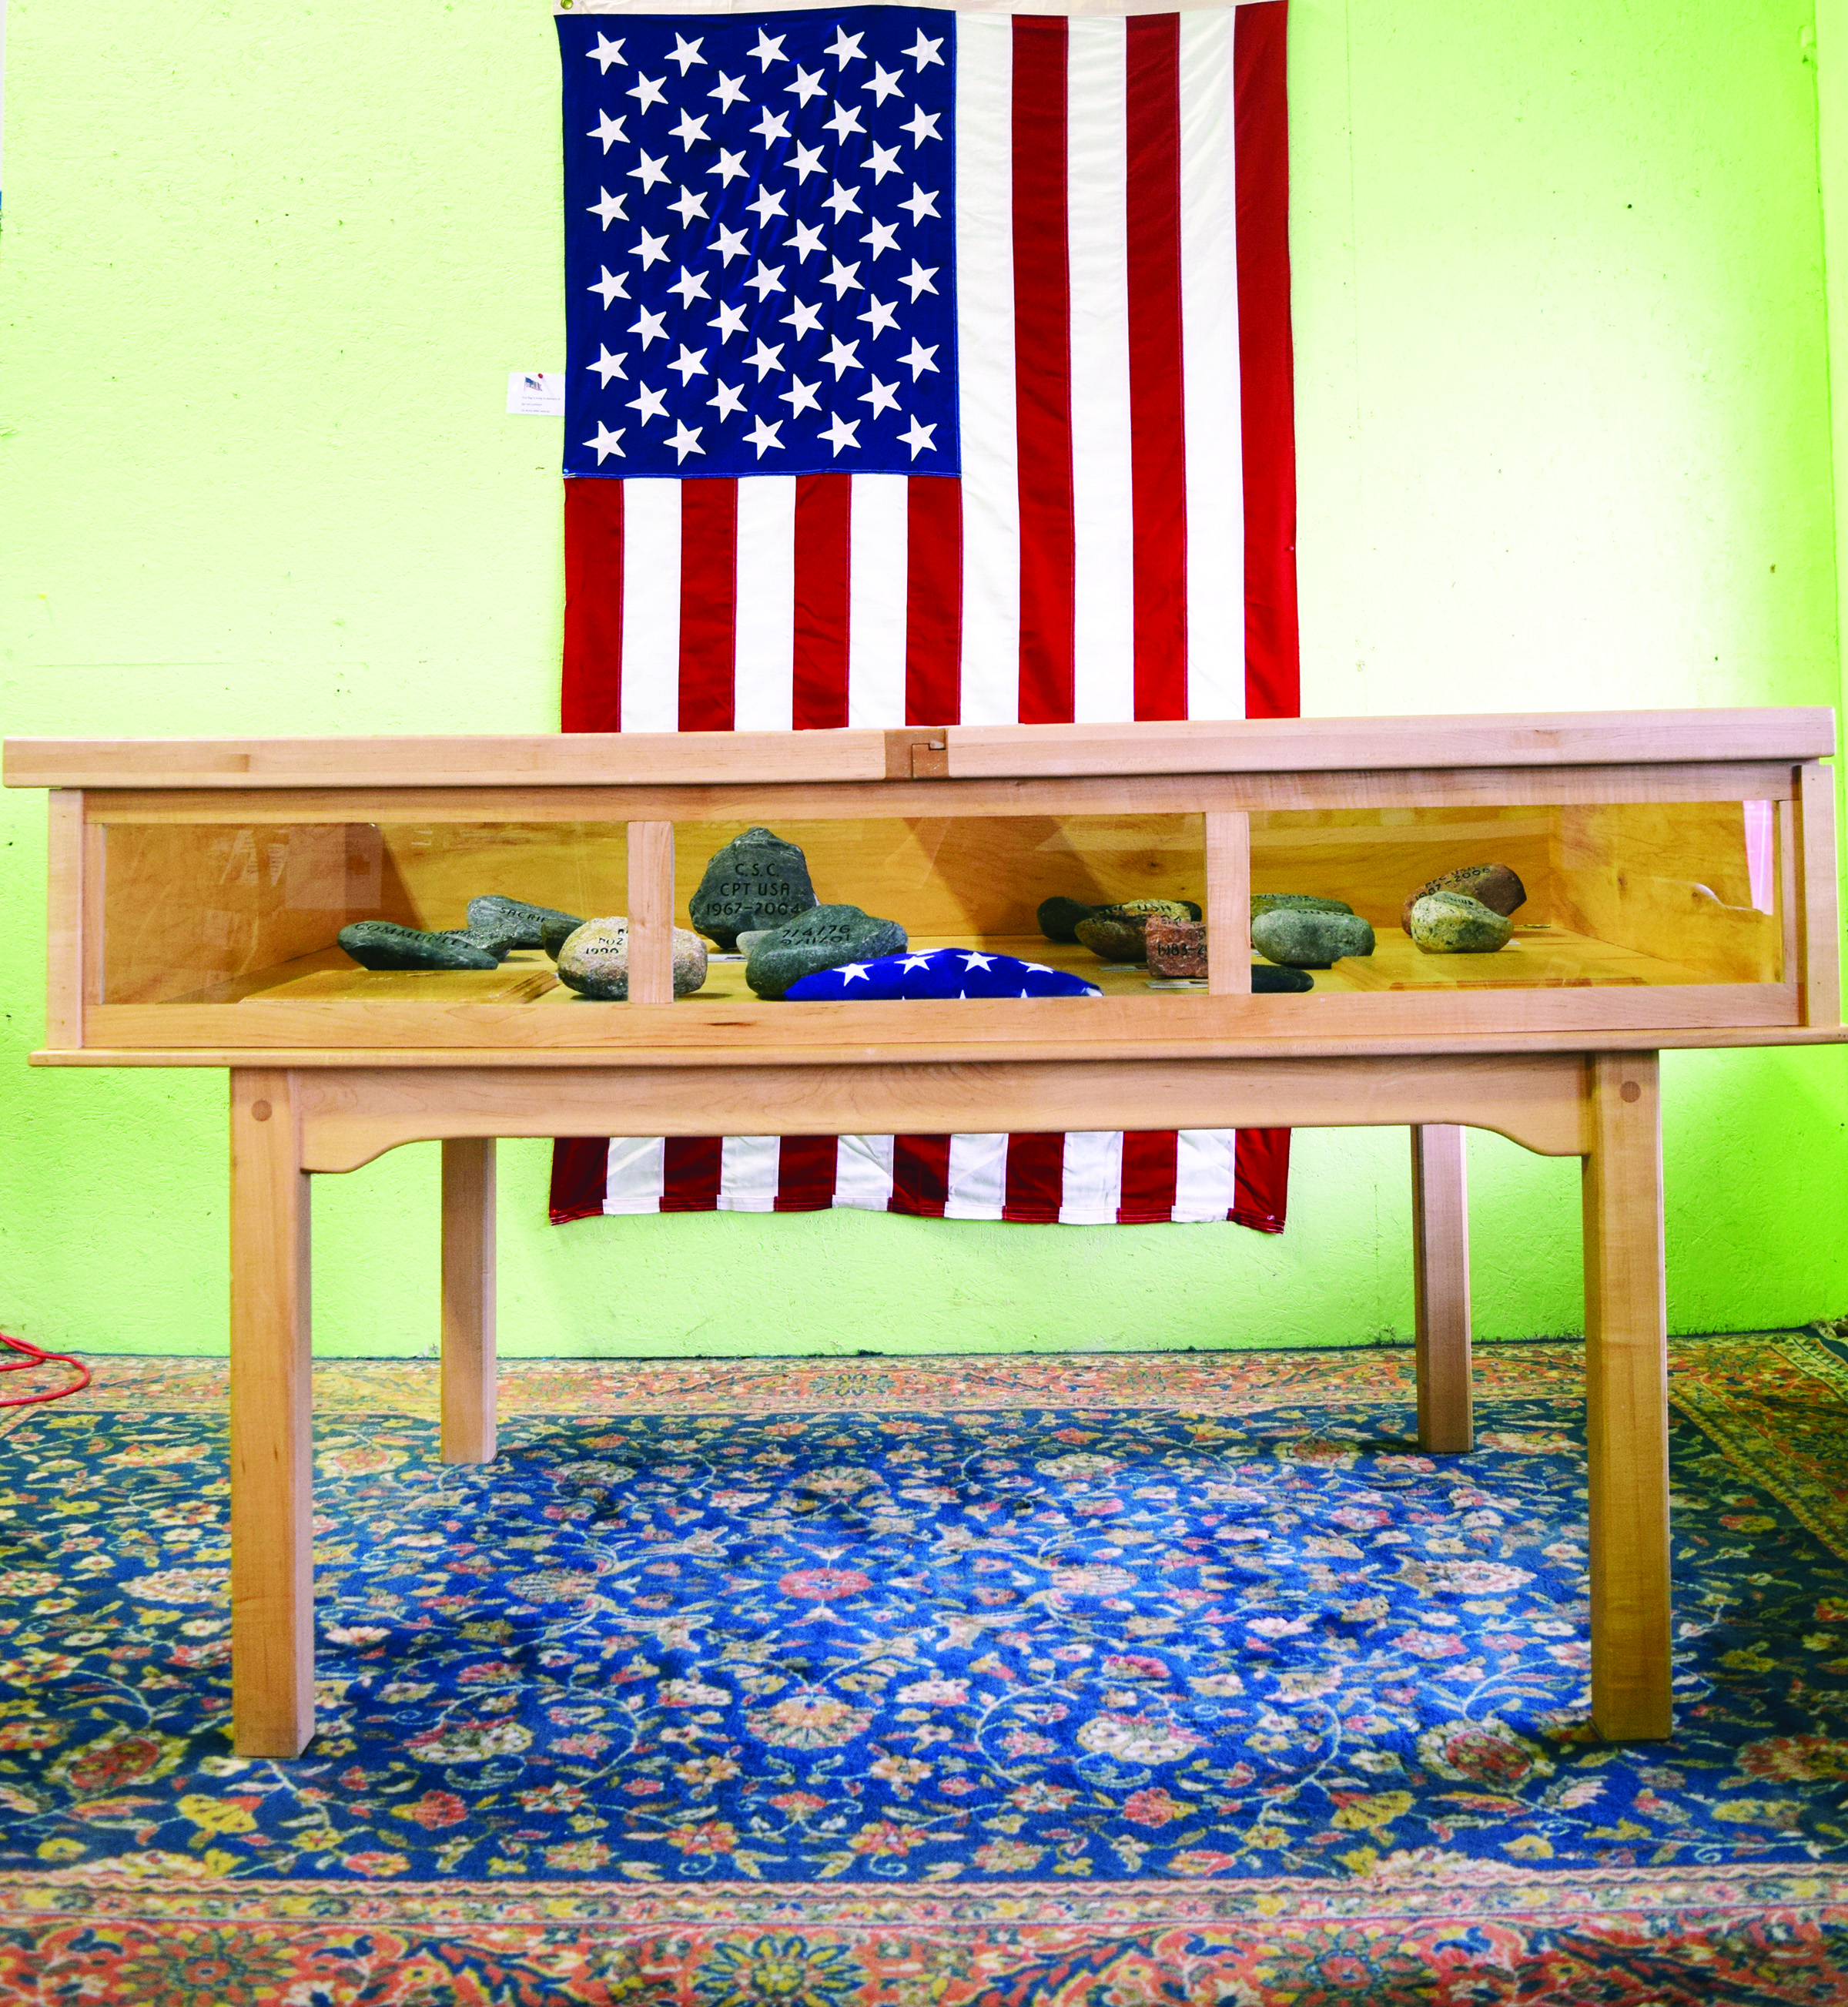 'The Honor Case,' a special tribute to fallen military members from Maine is now on display at the Habitat ReStore, 4 Industrial Drive in Kennebunk. The Summit Project will team with the ReStore to sponsor a tribute walk in Kennebunk on Nov. 18. SUBMITTED PHOTO